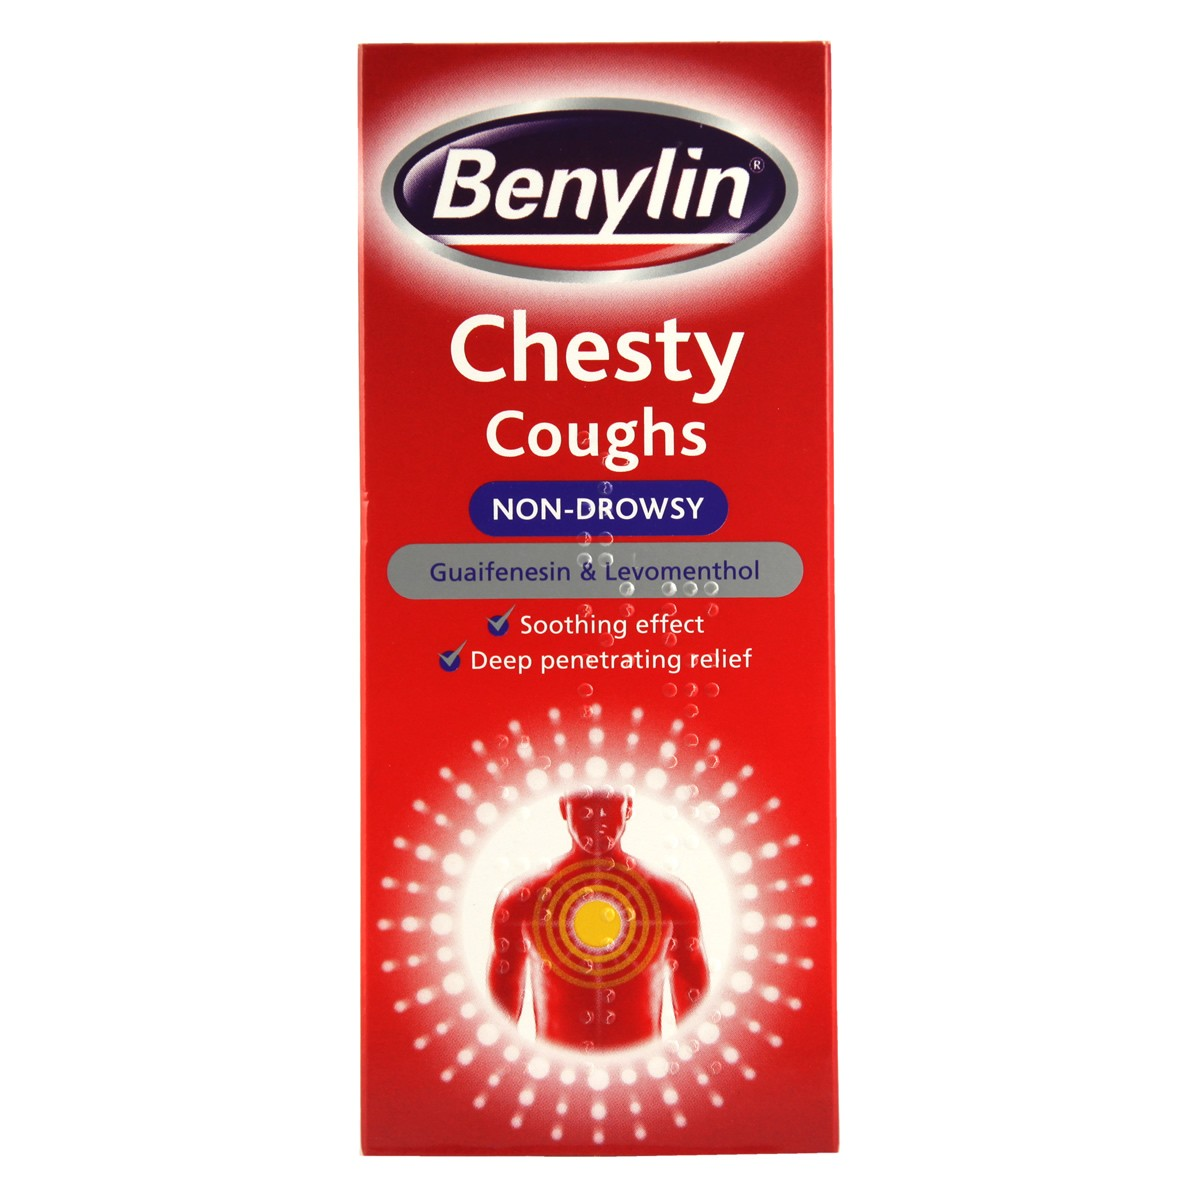 Benylin Chesty Coughs Non-Drowsy